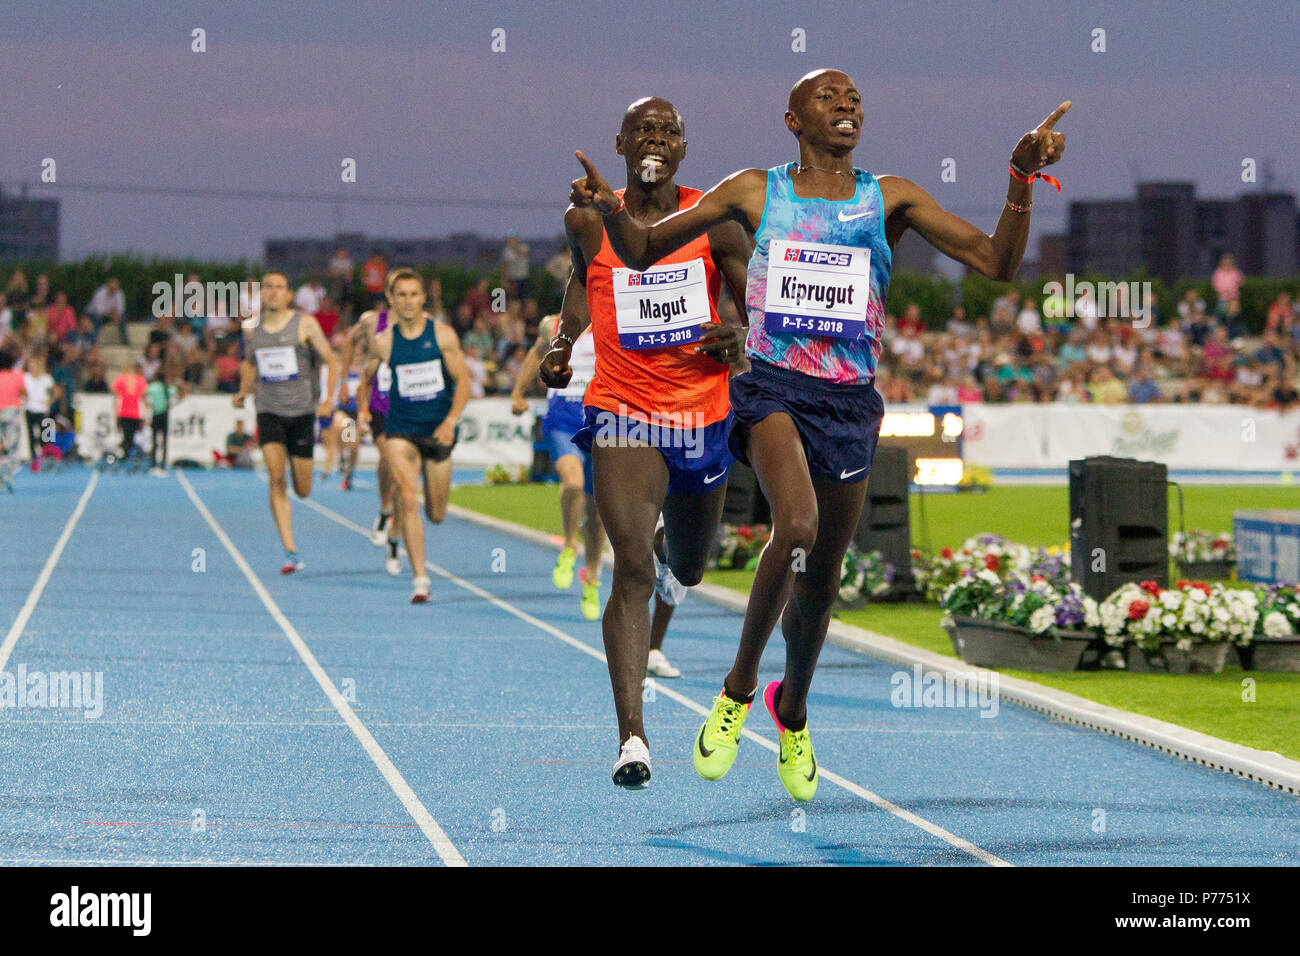 Men's 1500 metre run at the P-T-S athletics meeting in the sports site of x-bionic sphere® in Šamorín, Slovakia - Stock Image